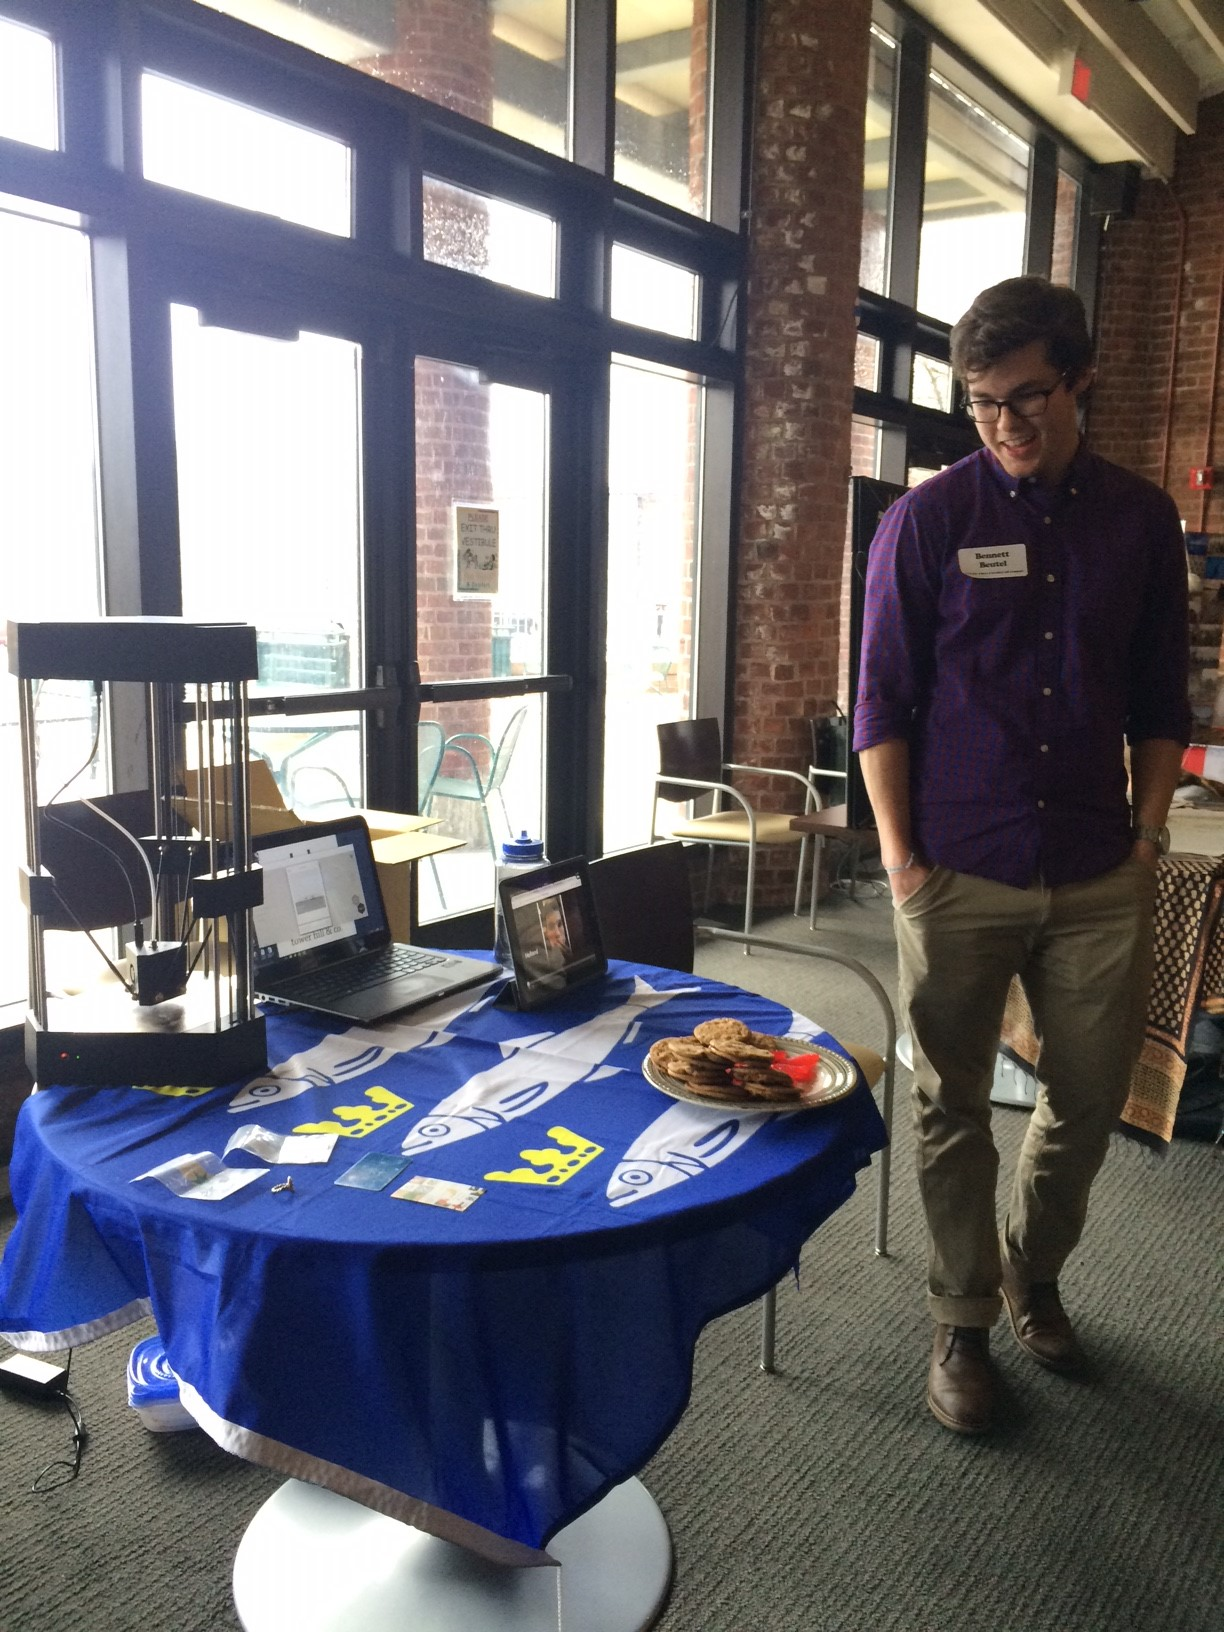 Bennett Beutel, '16, with his presentation on interning in the Netherlands!